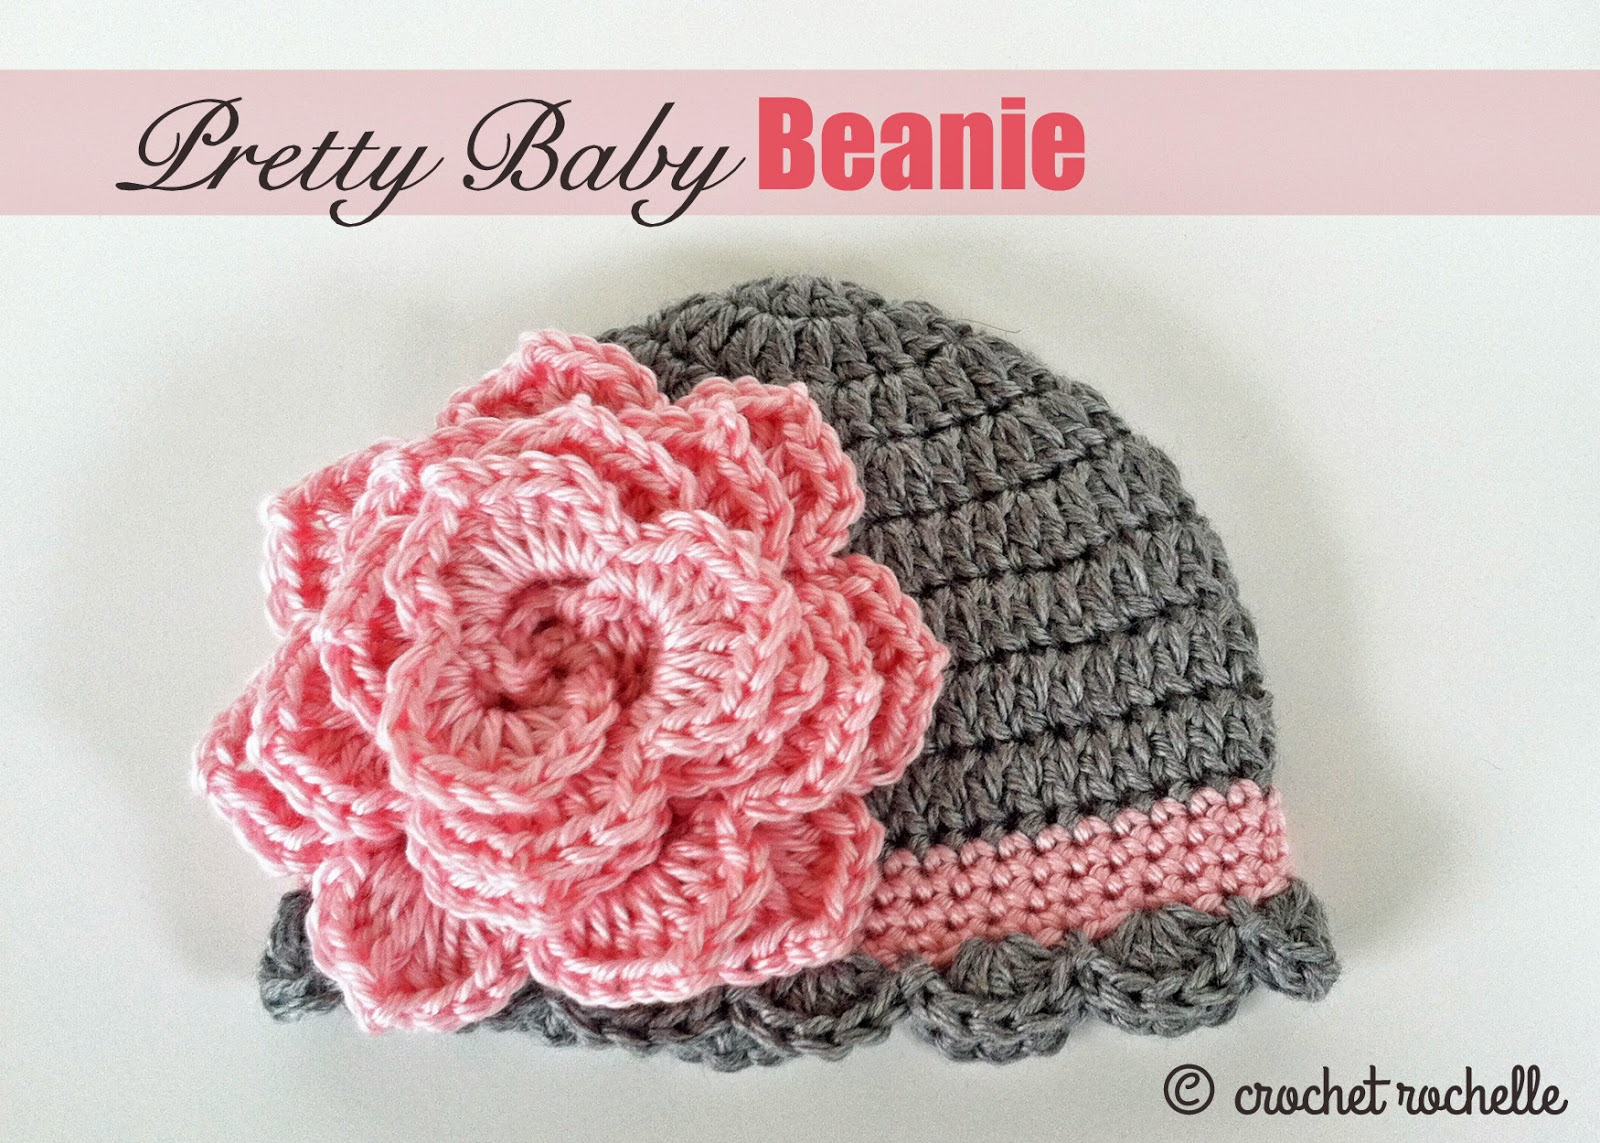 Free Crochet Pattern For Infant Hat : Crochet Rochelle: Pretty Baby Beanie